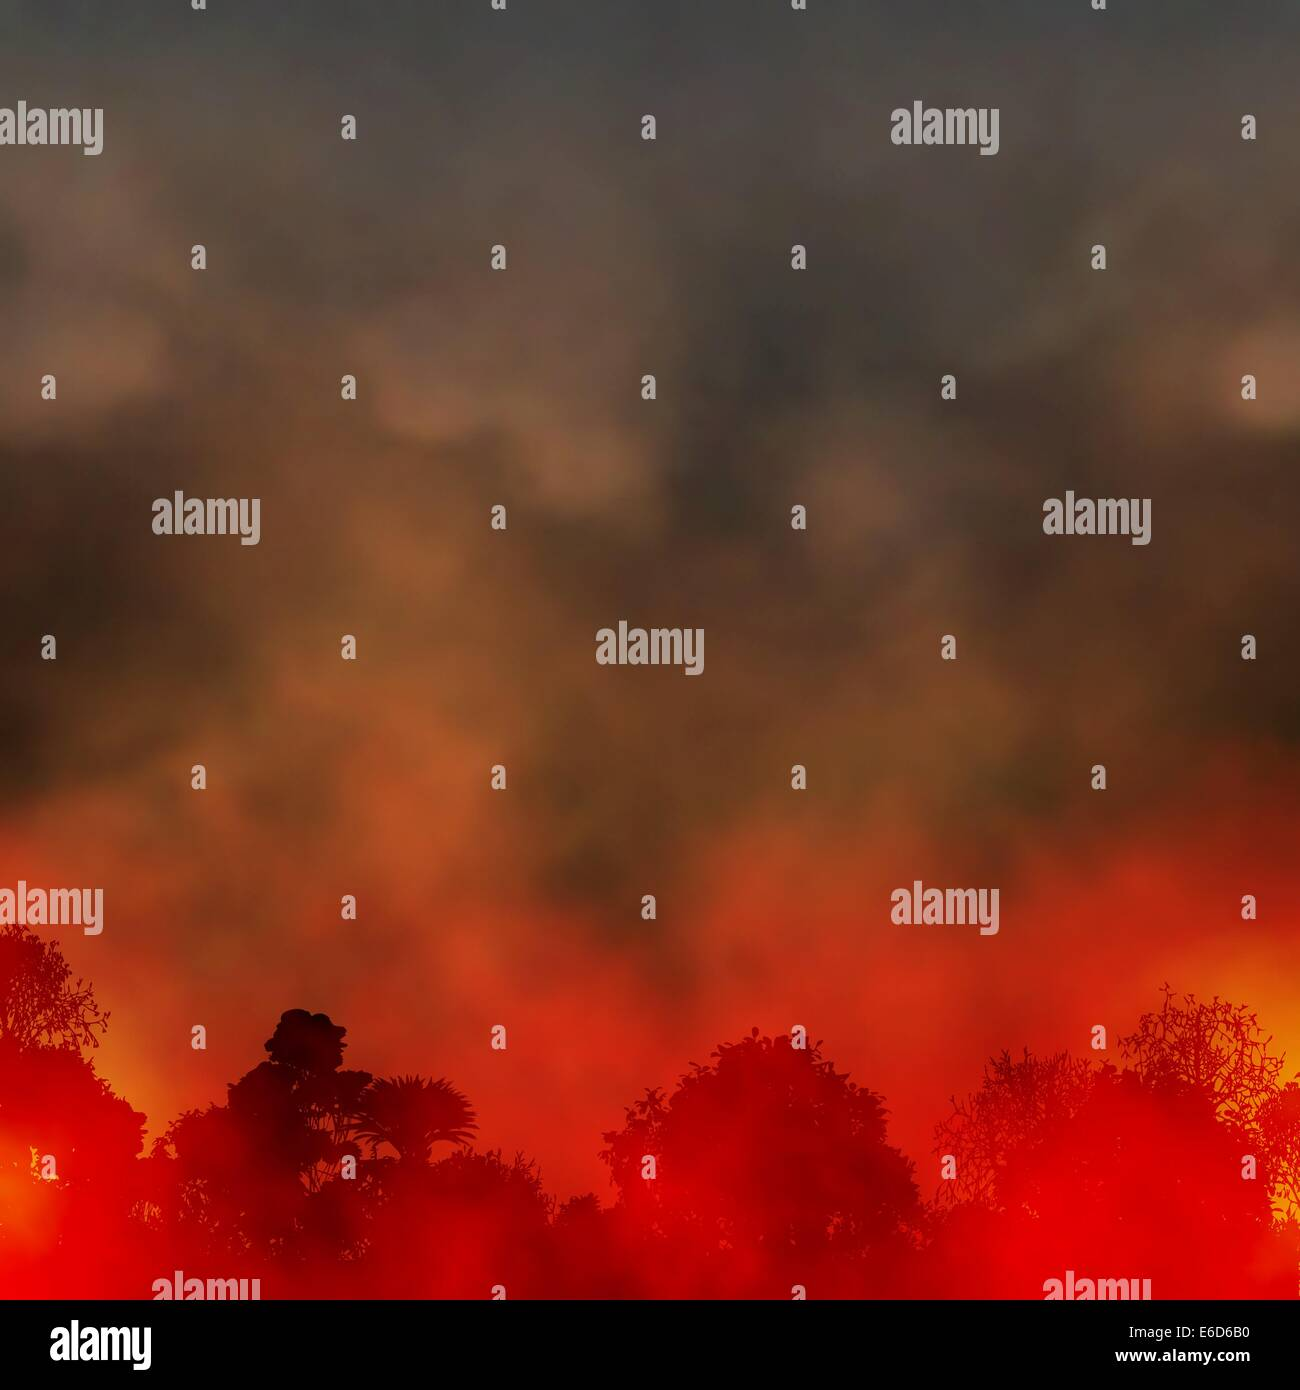 Editable vector EPS10 illustration of a smoky forest fire made using a gradient mesh - Stock Image